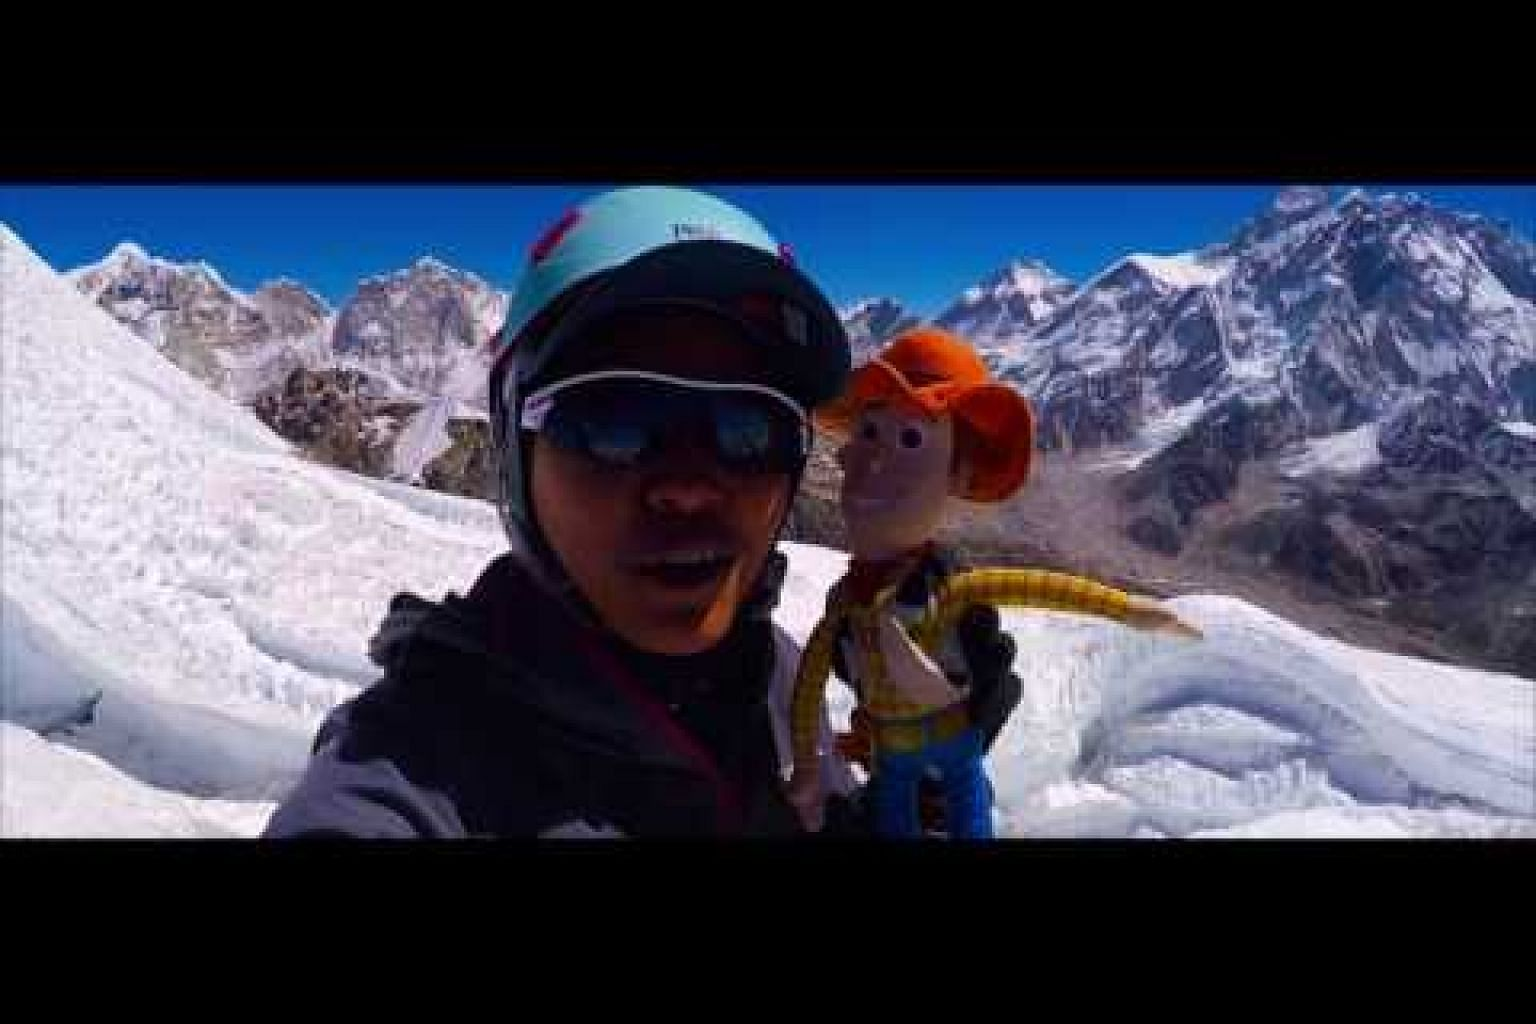 The NTU-NIE Everest Expedition 2017